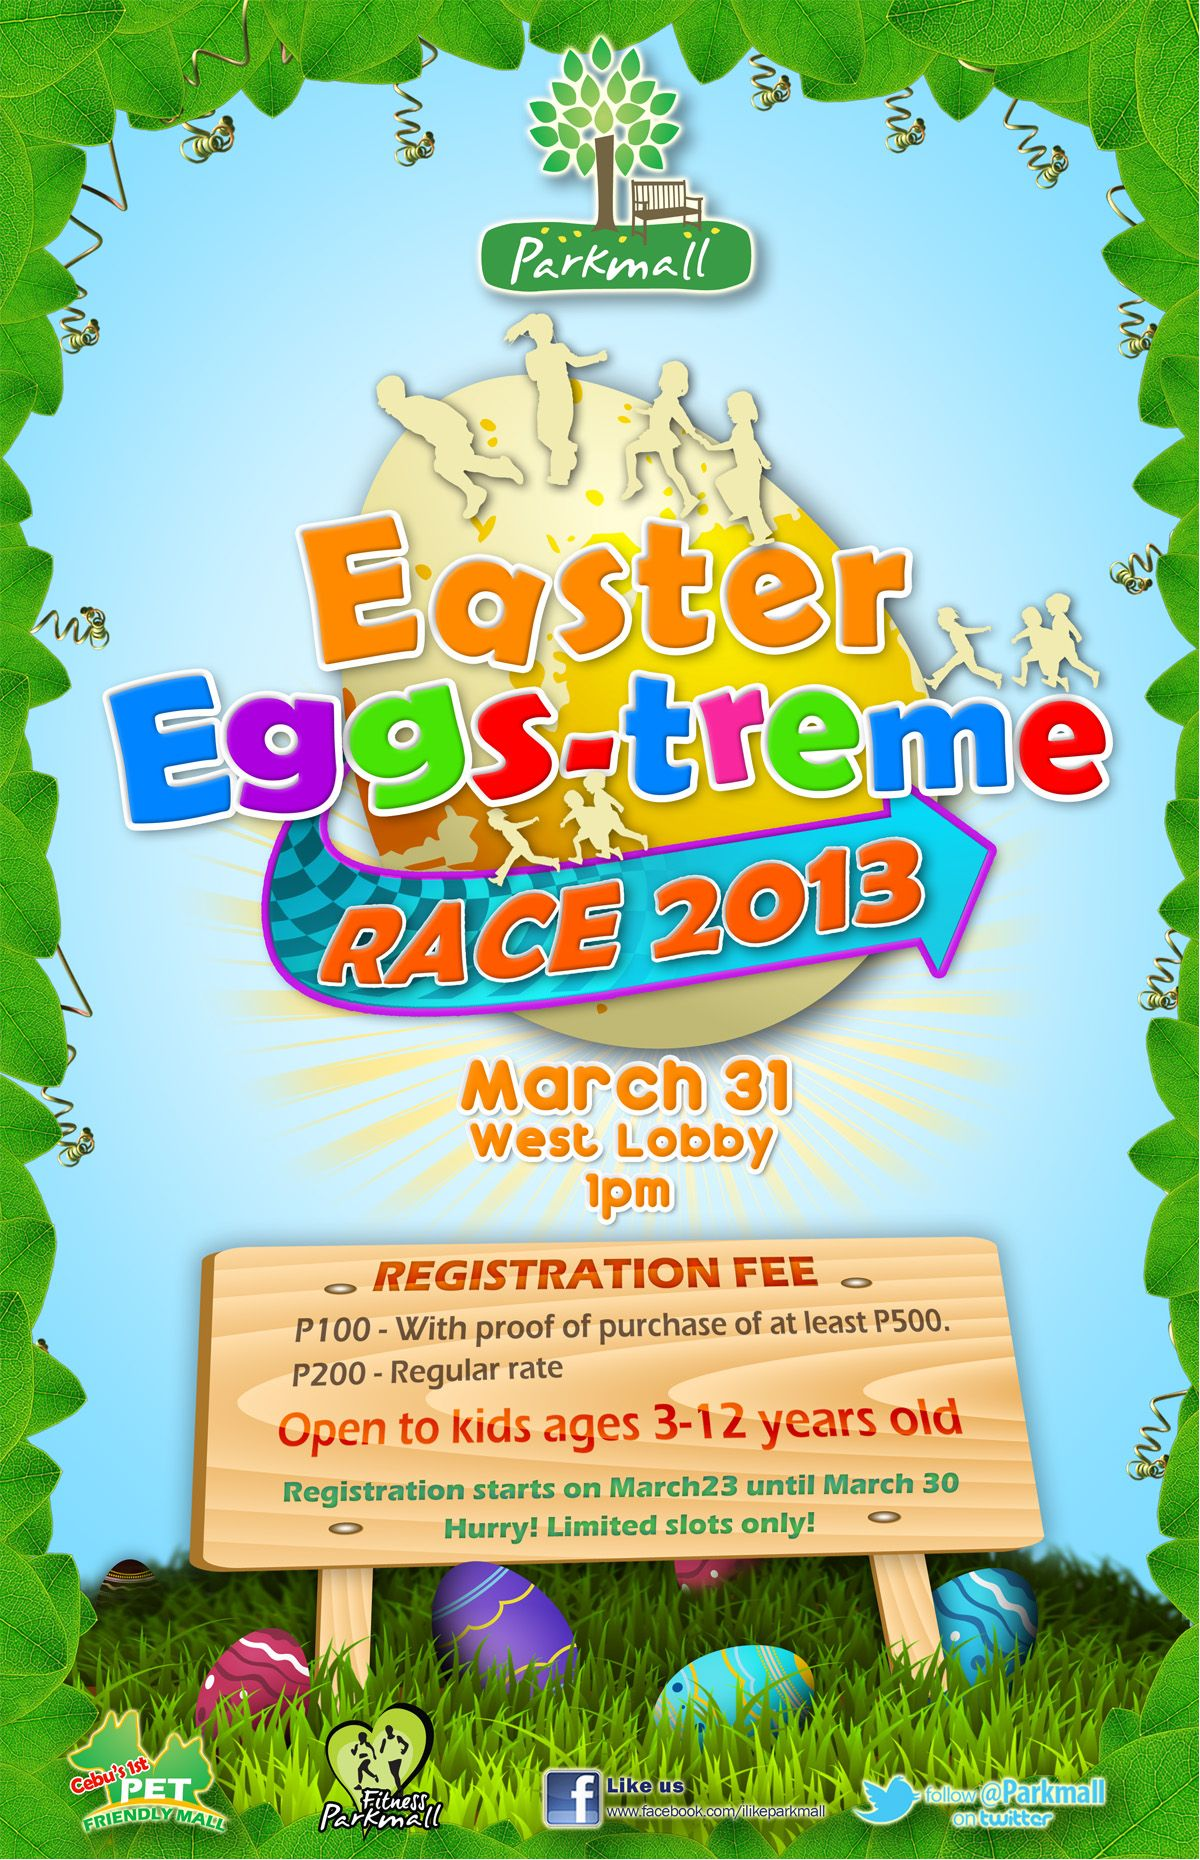 Eggs-iting Easter Eggs-treme Race 2013 at Parkmall | CebuFinest